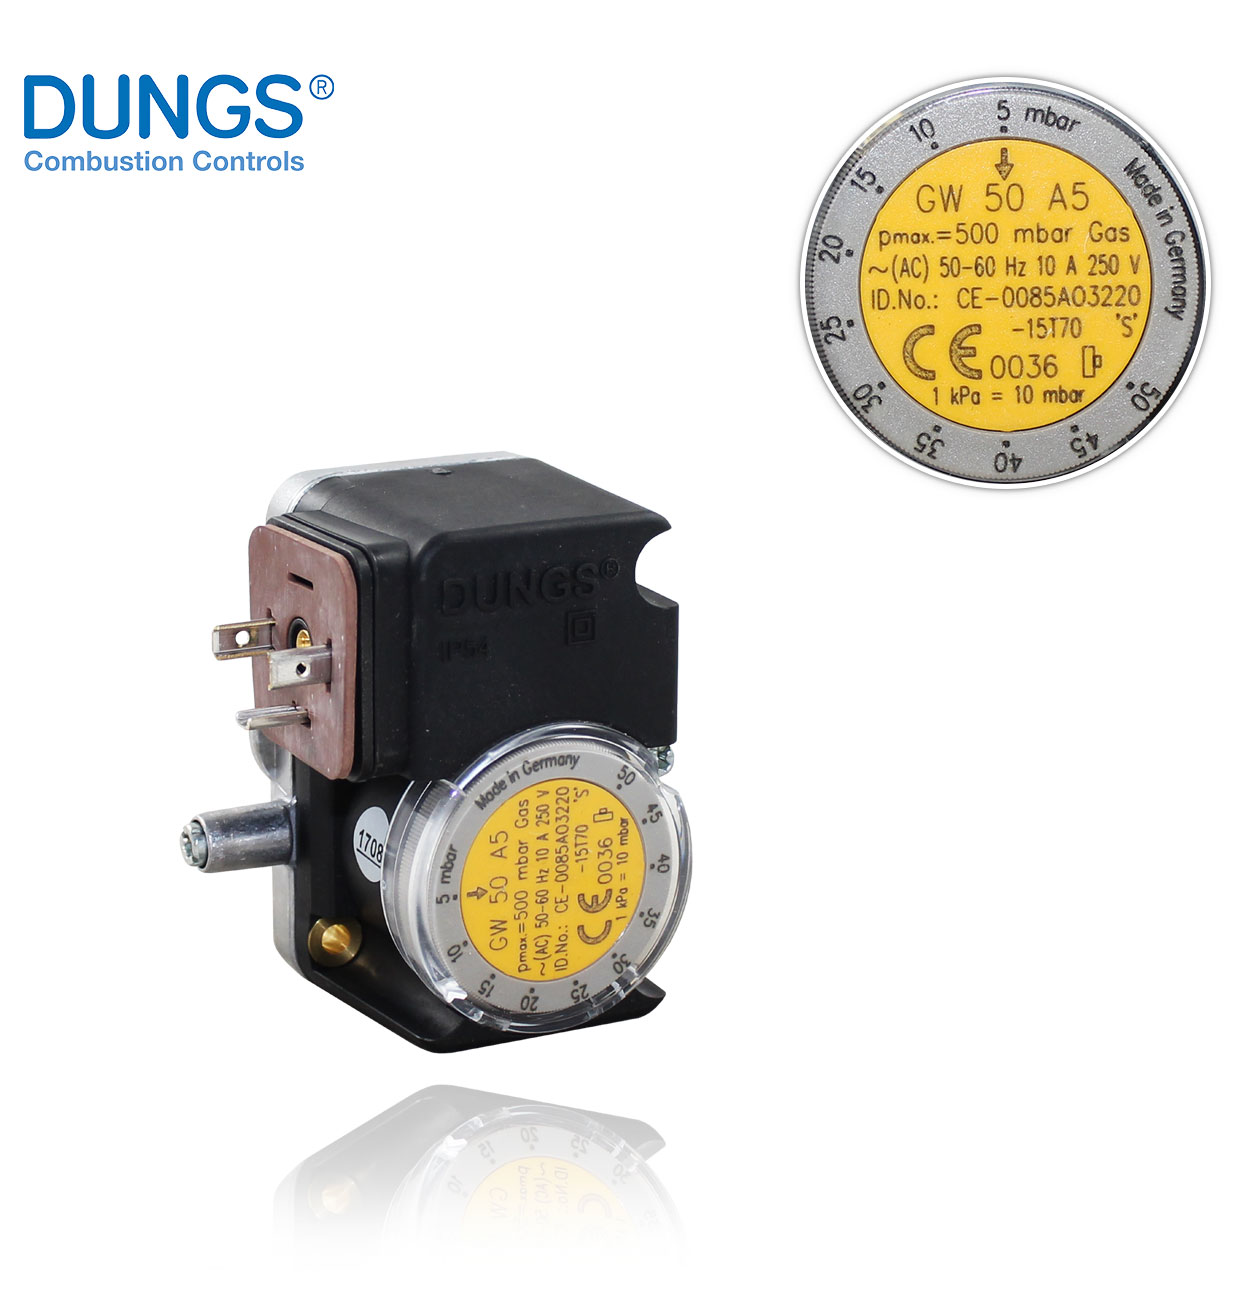 GW 50 A5 (A2) DUNGS PRESSURE SWITCH